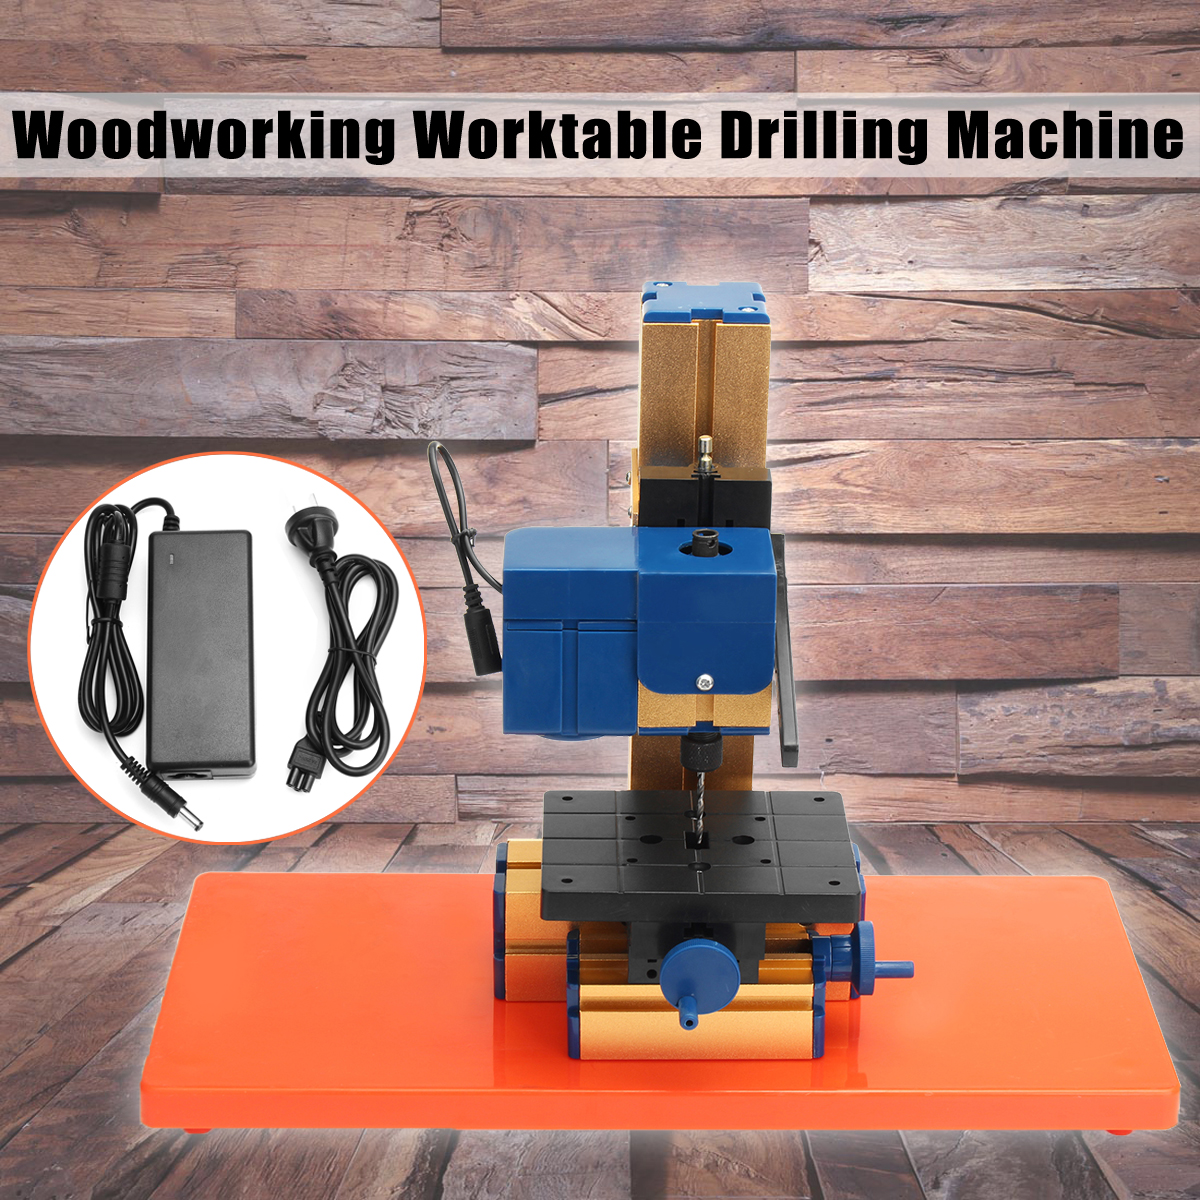 цена на Mini Wood Lathe DIY Woodworking Worktable Drilling Machine Hobby Electric Drill Power Tools 24W AC100-240V